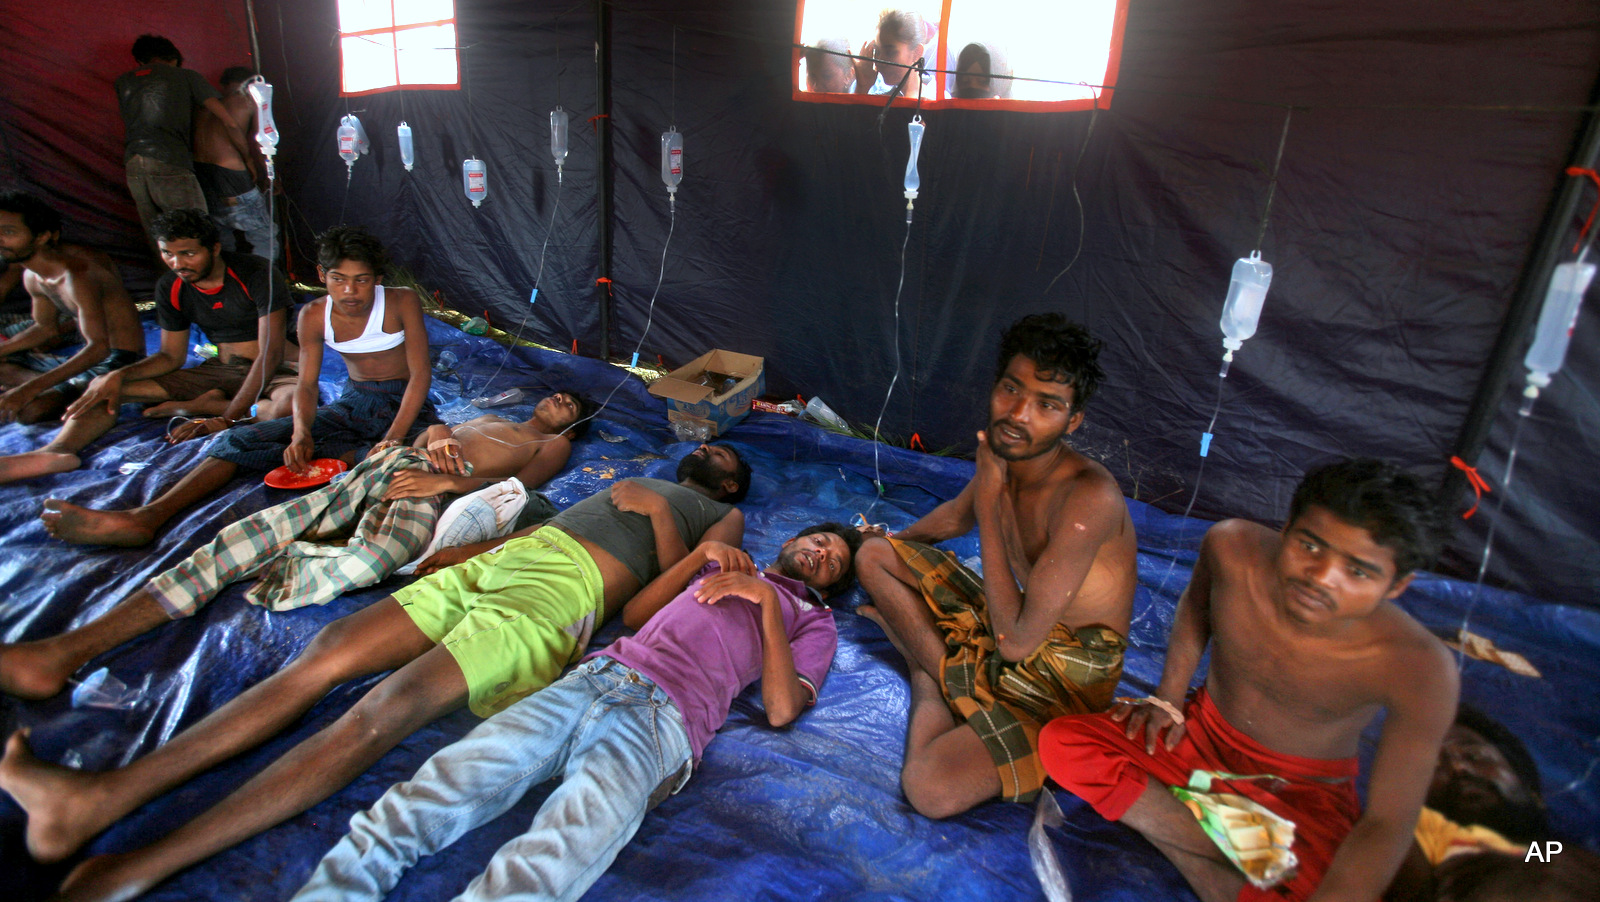 Newly arrived migrants receive medical treatment inside a makeshift tent at Kuala Langsa Port in Langsa, Aceh province, Indonesia, Friday, May 15, 2015. More than 1,000 Bangladeshi and ethnic Rohingya migrants came ashore in different parts of Indonesia and Thailand on Friday, becoming the latest refugees to slip into Southeast Asian countries that have made it clear the boat people are not welcome.